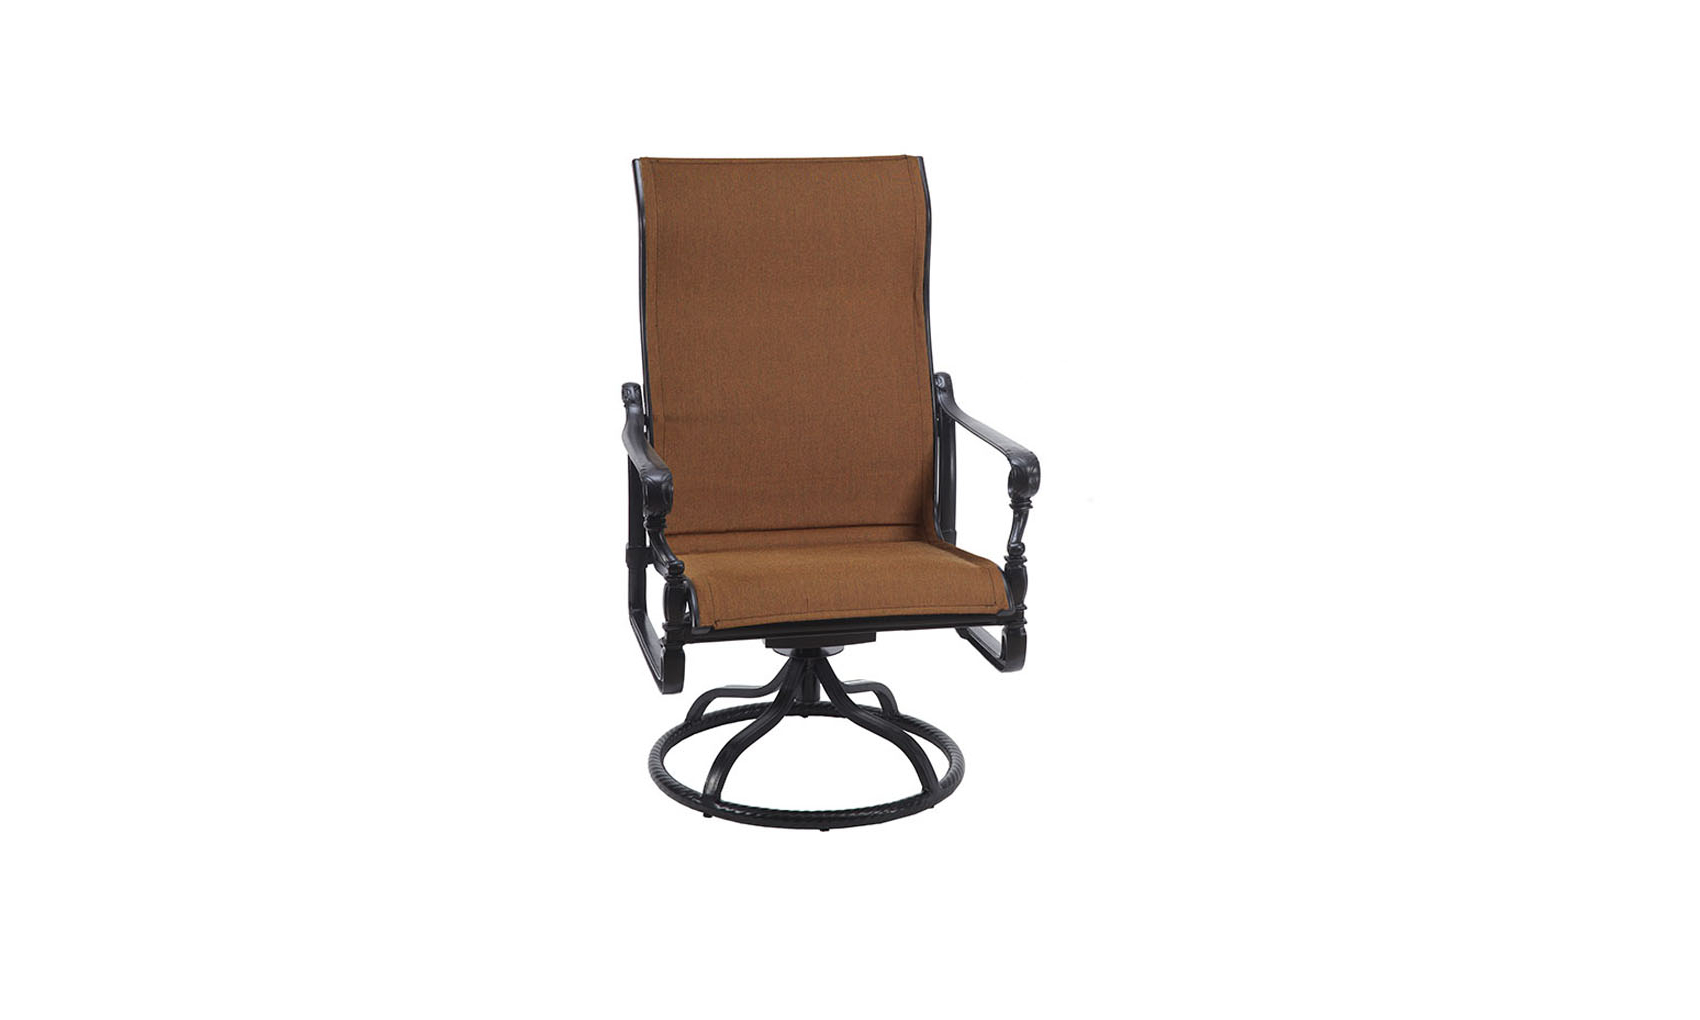 Famous Grand Terrace Padded Sling High Back Swivel Rocking Lounge Within Padded Sling High Back Swivel Chairs (Gallery 28 of 30)